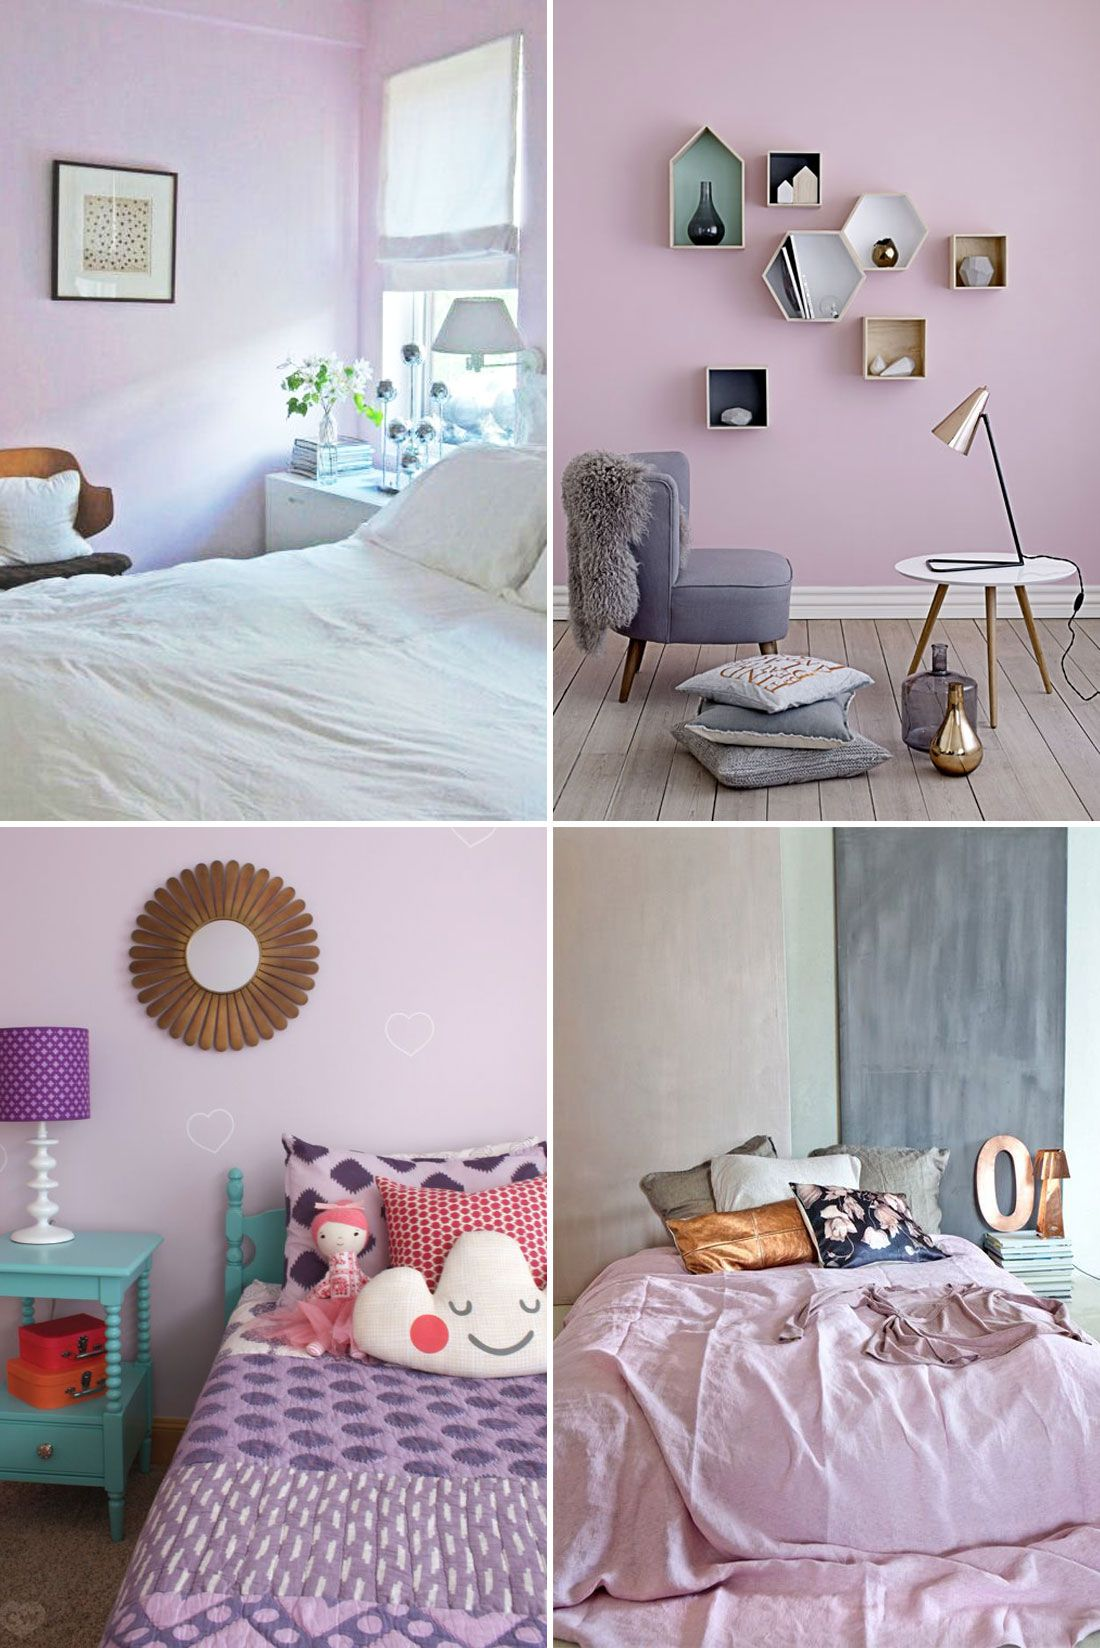 The 3 Most Relaxing Colors for Your Bedroom | Interior Design ...